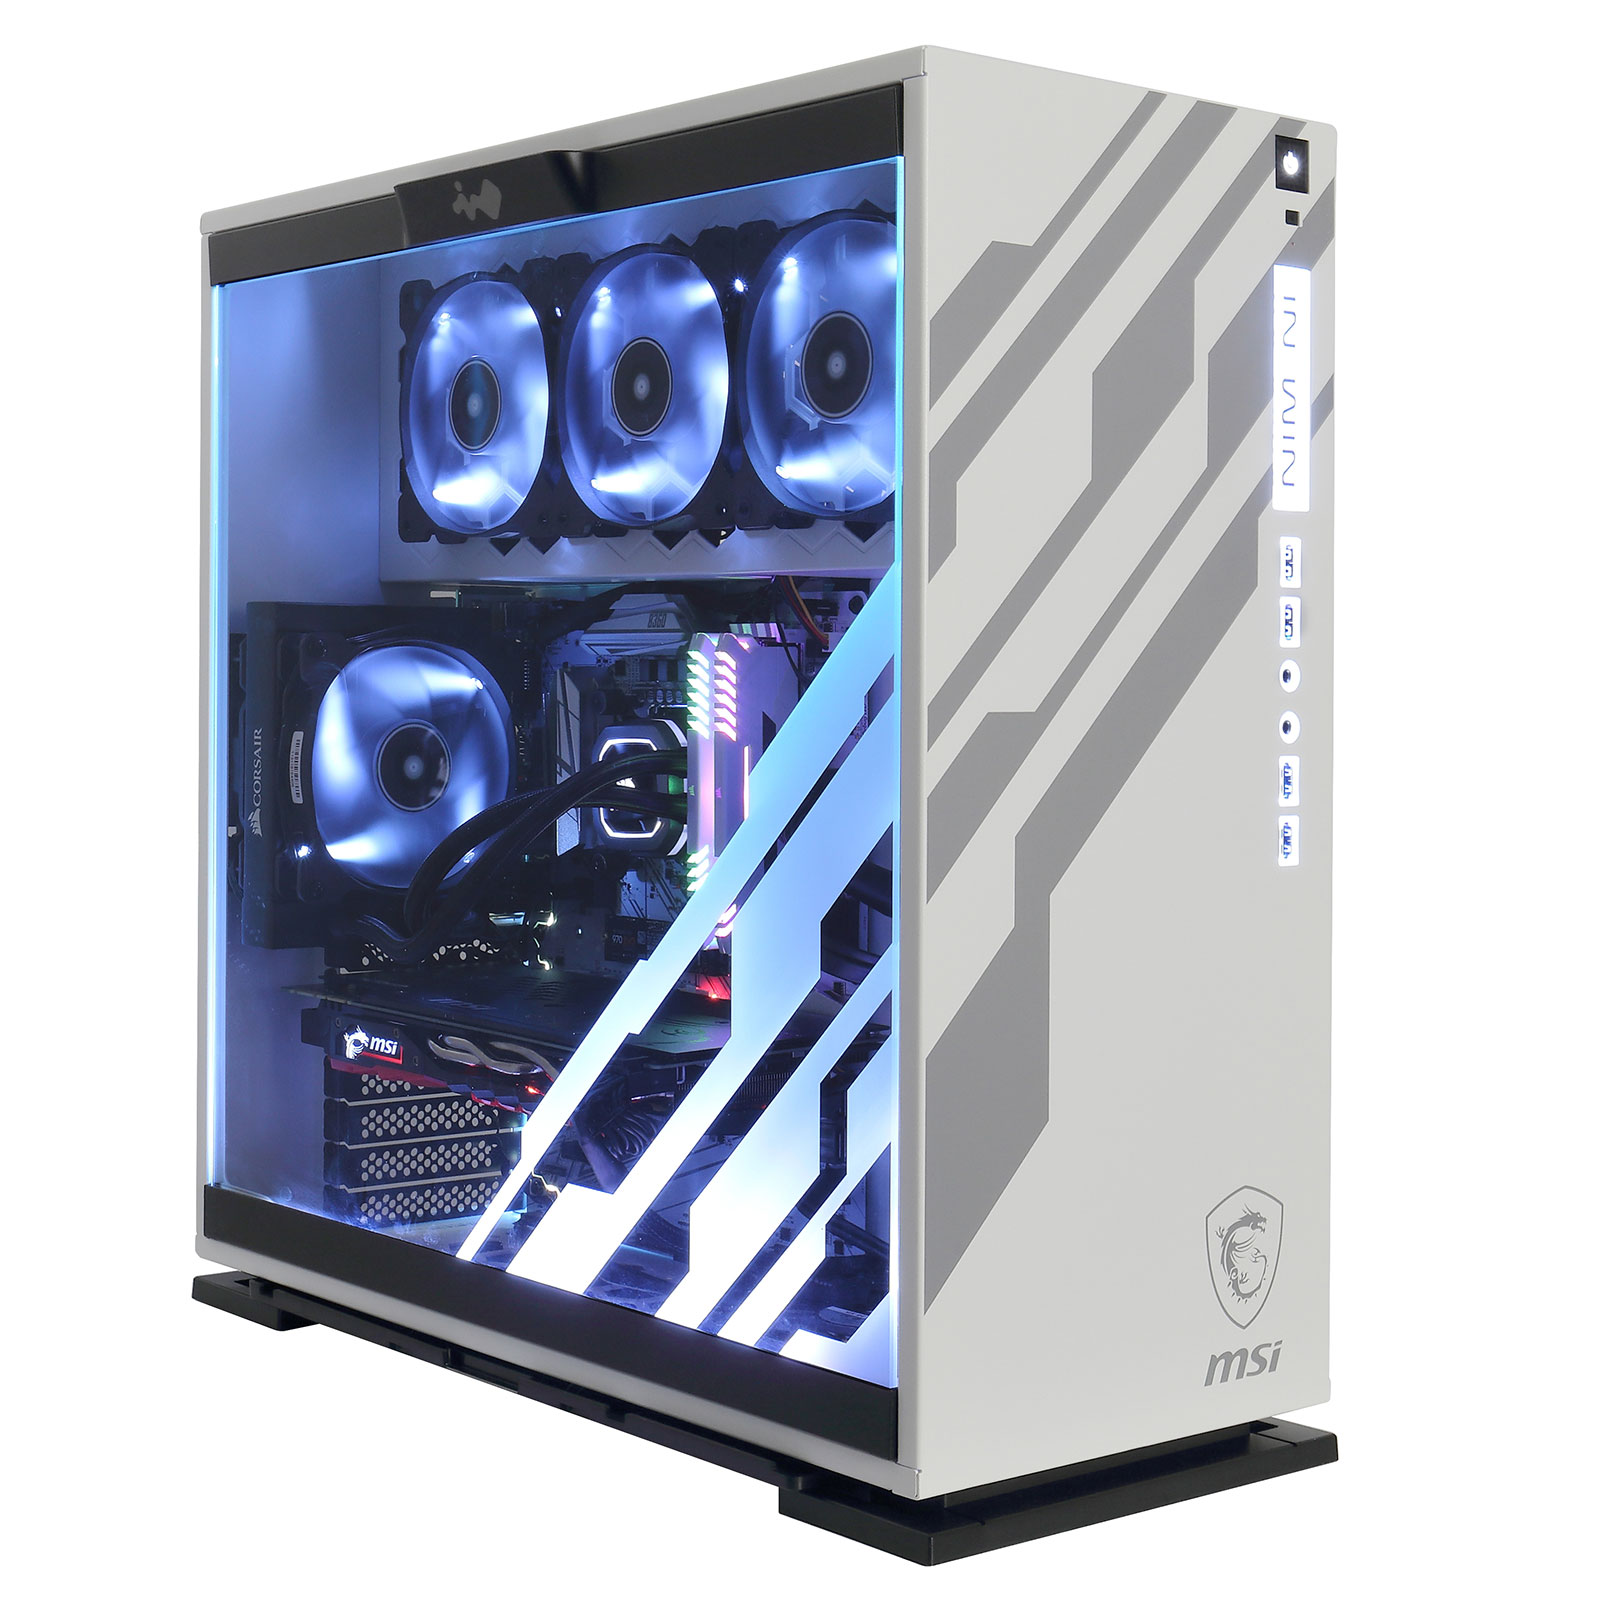 PC de bureau LDLC PC10 Macchiato Artic Refresh Intel Core i5-8600K (3.6 GHz) 16 Go SSD 250 Go + HDD 1 To NVIDIA GeForce GTX 1070 Ti 8 Go Windows 10 Famille 64 bits (monté)